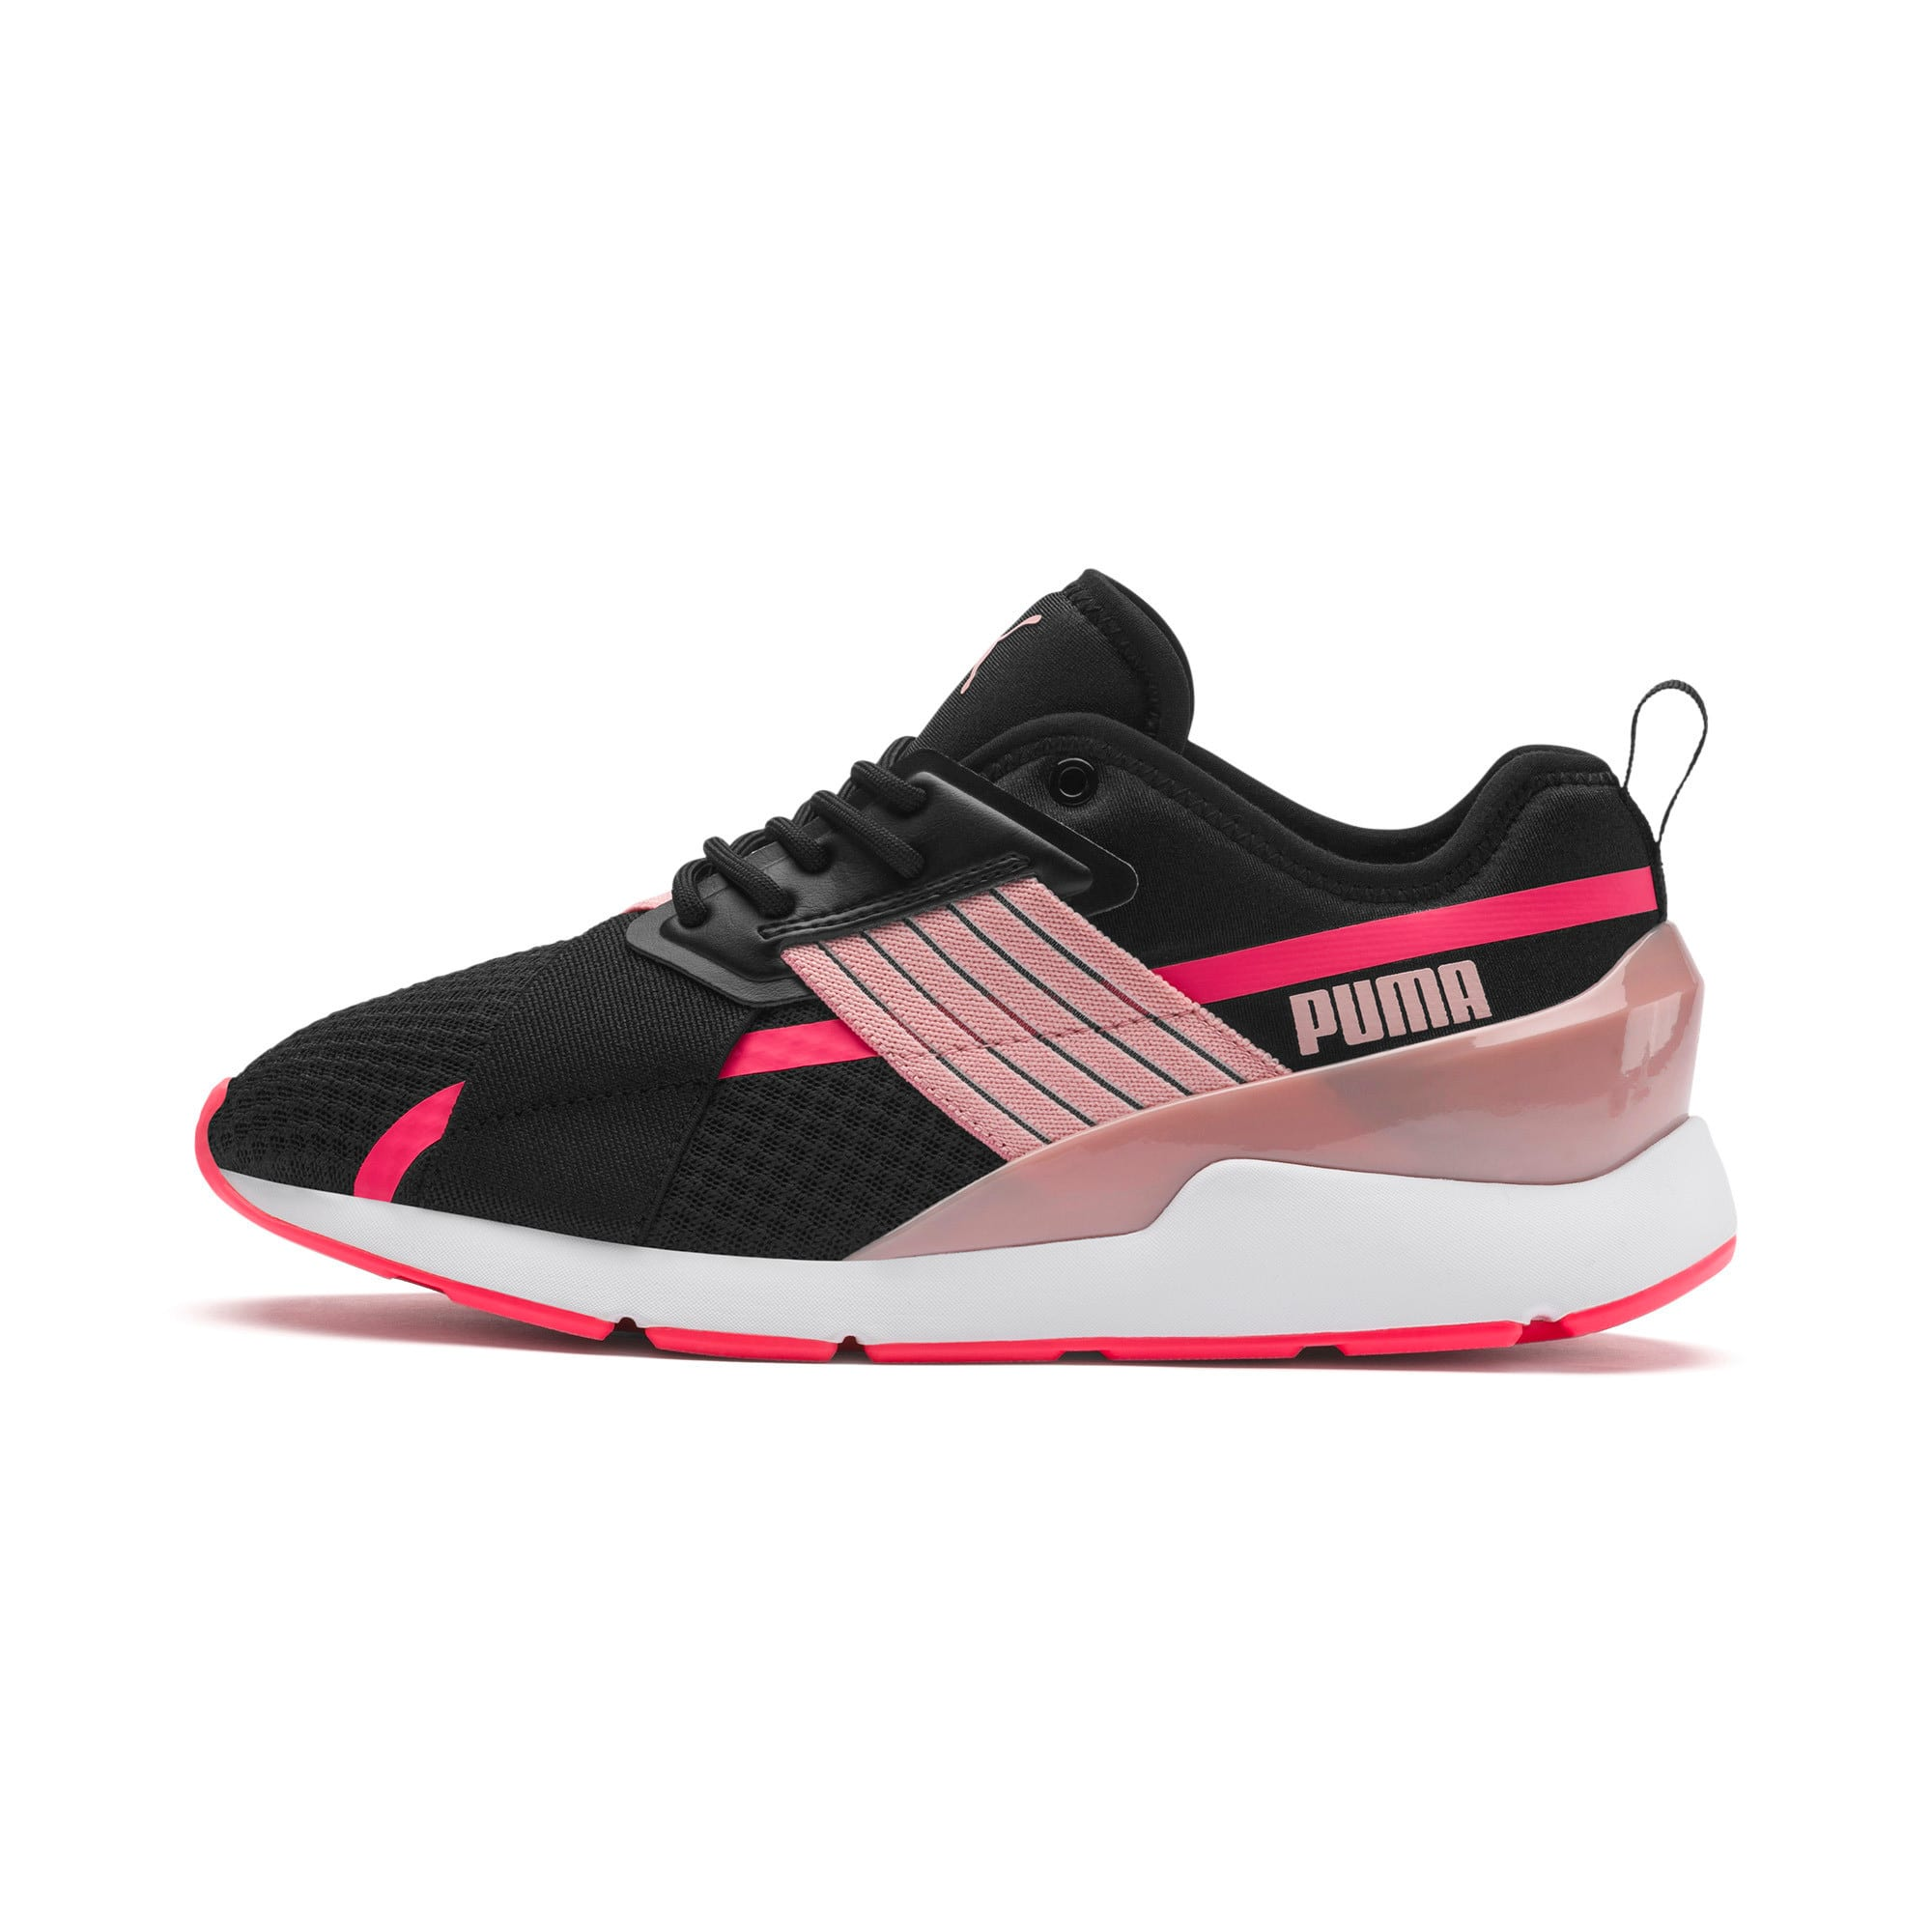 Muse X-2 Women's Trainers, Puma Black-Bridal Rose, large